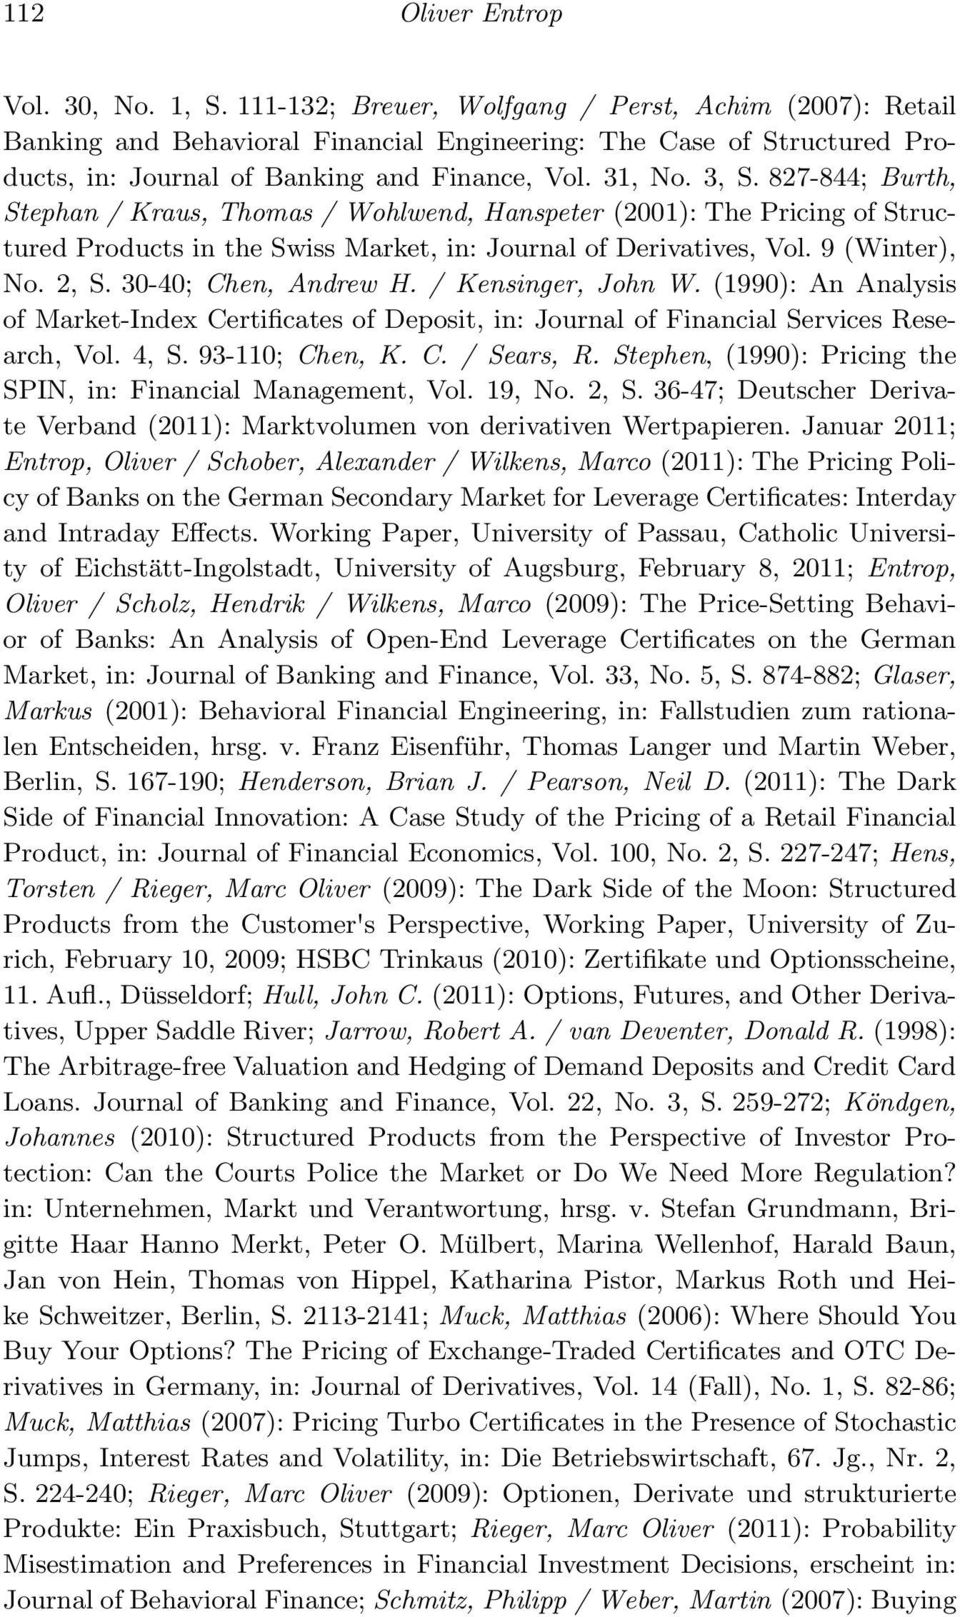 827-844; Burth, Stephan / Kraus, Thomas / Wohlwend, Hanspeter (2001): The Pricing of Structured Products in the Swiss Market, in: Journal of Derivatives, Vol. 9 (Winter), No. 2, S.